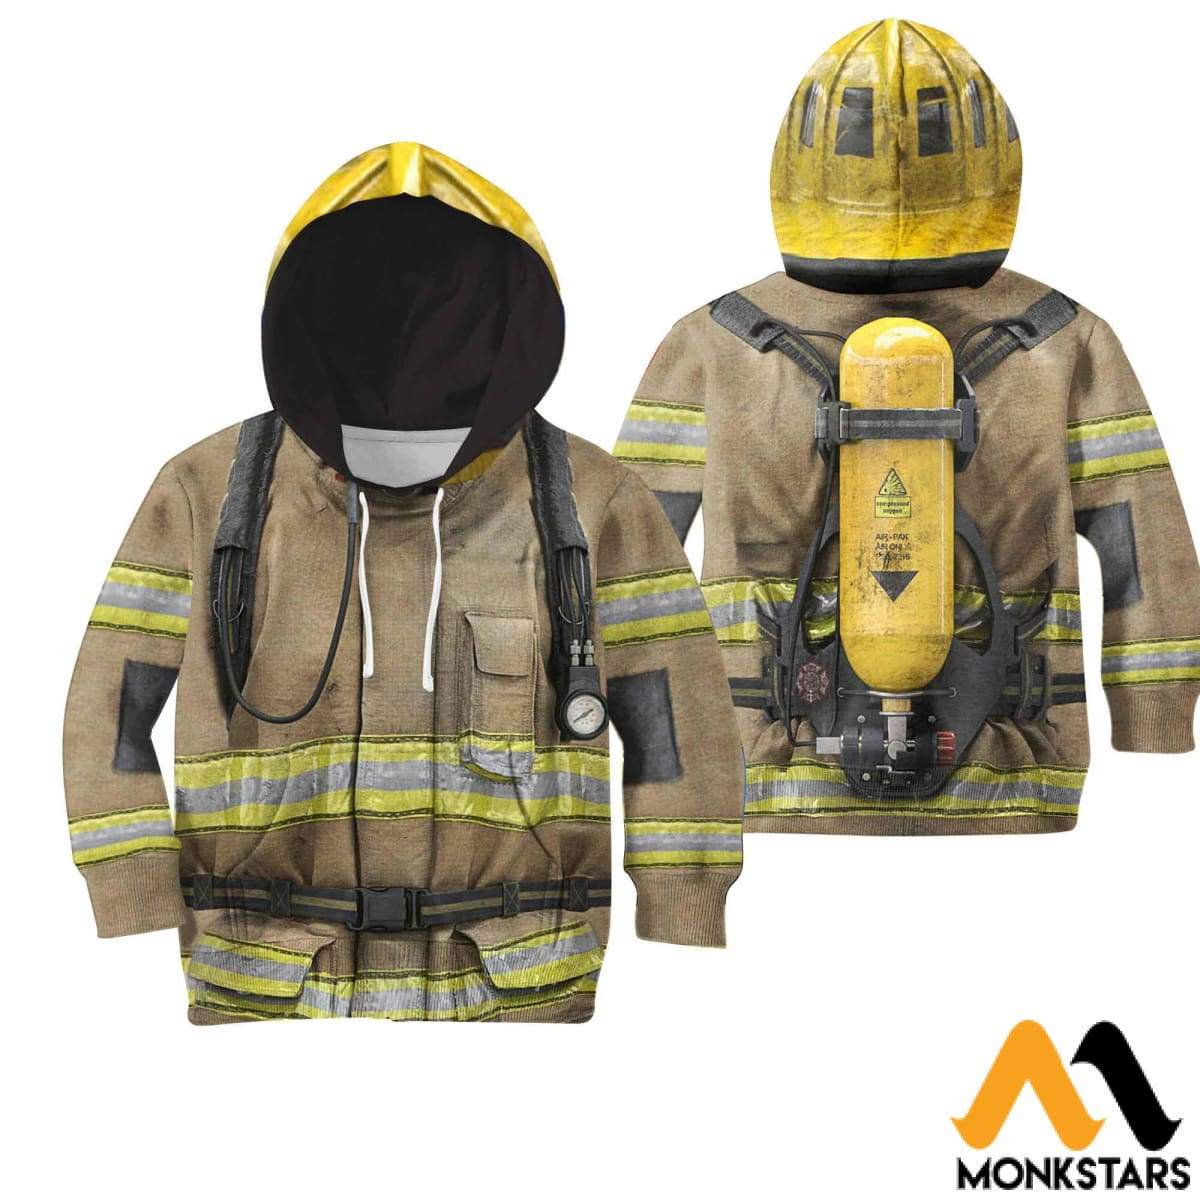 Firefighter Suit 3D All Over Printed Shirts For Kids Normal Hoodie / Toddler 2T Kid Clothes